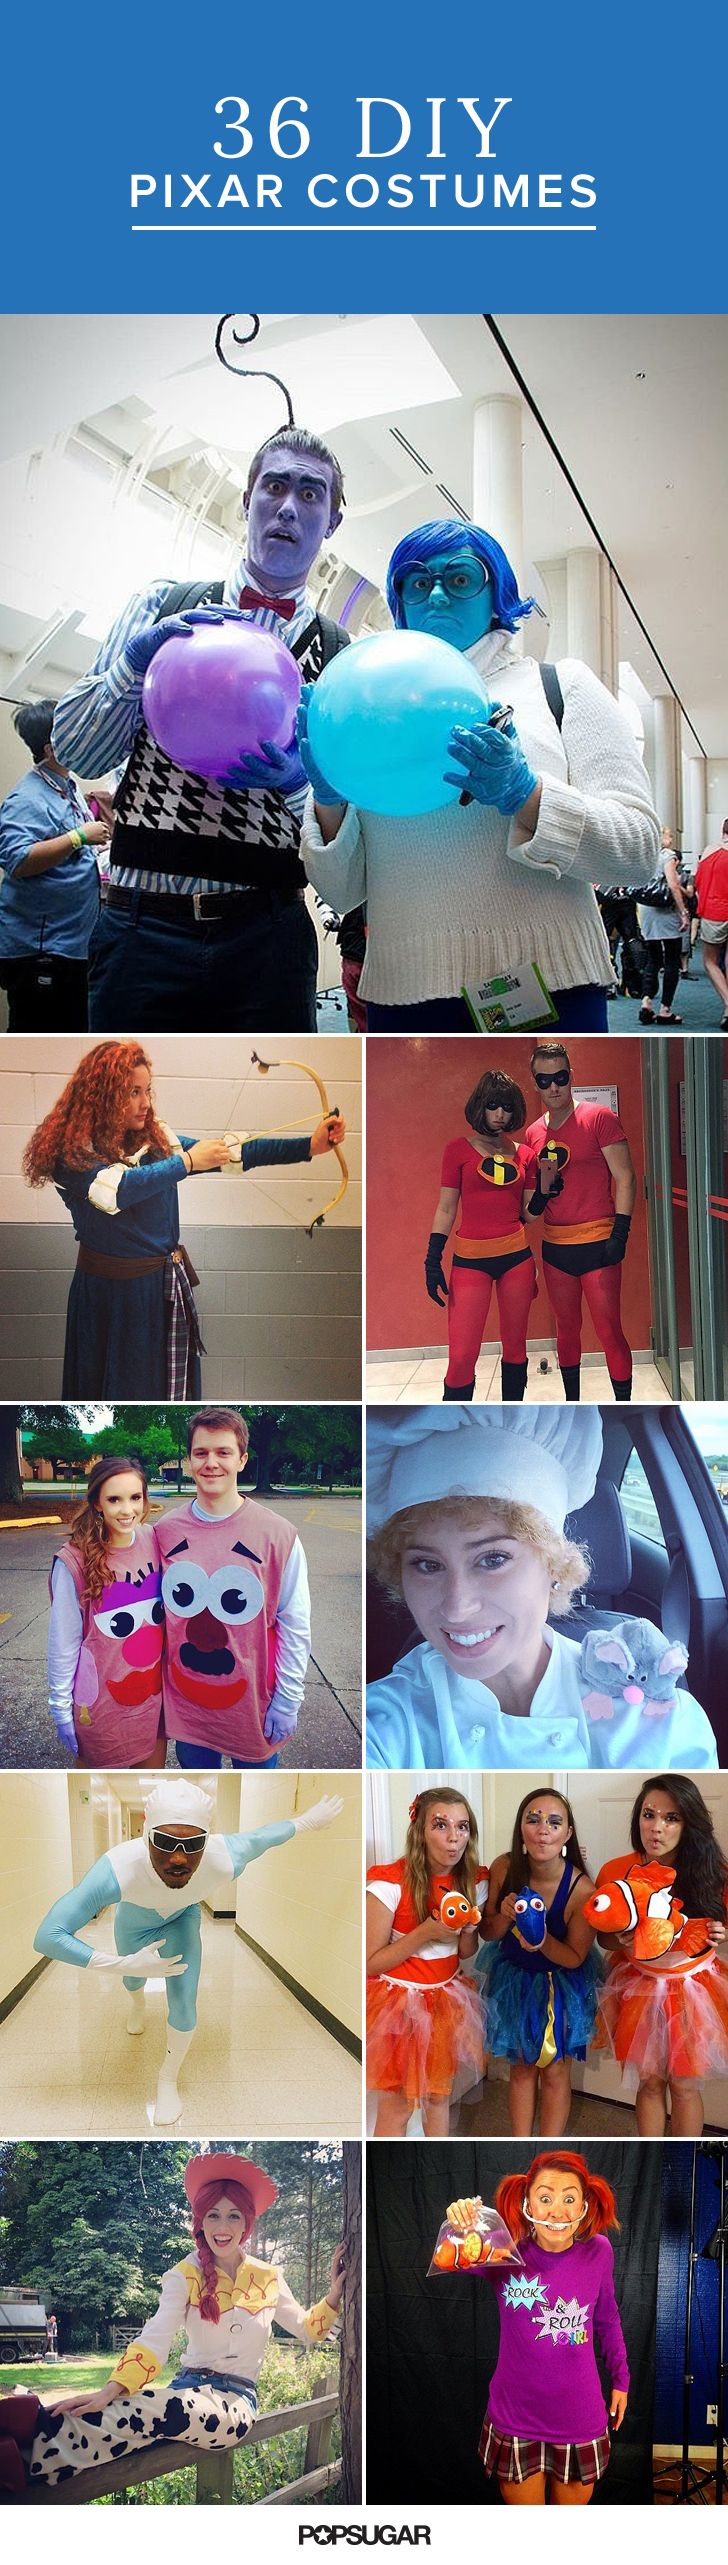 Some of our favorite movies from the past 20 years have come out of the animation studio. If you're a true fan, you'll want to dress up like your favorite characters from Pixar movies for Halloween